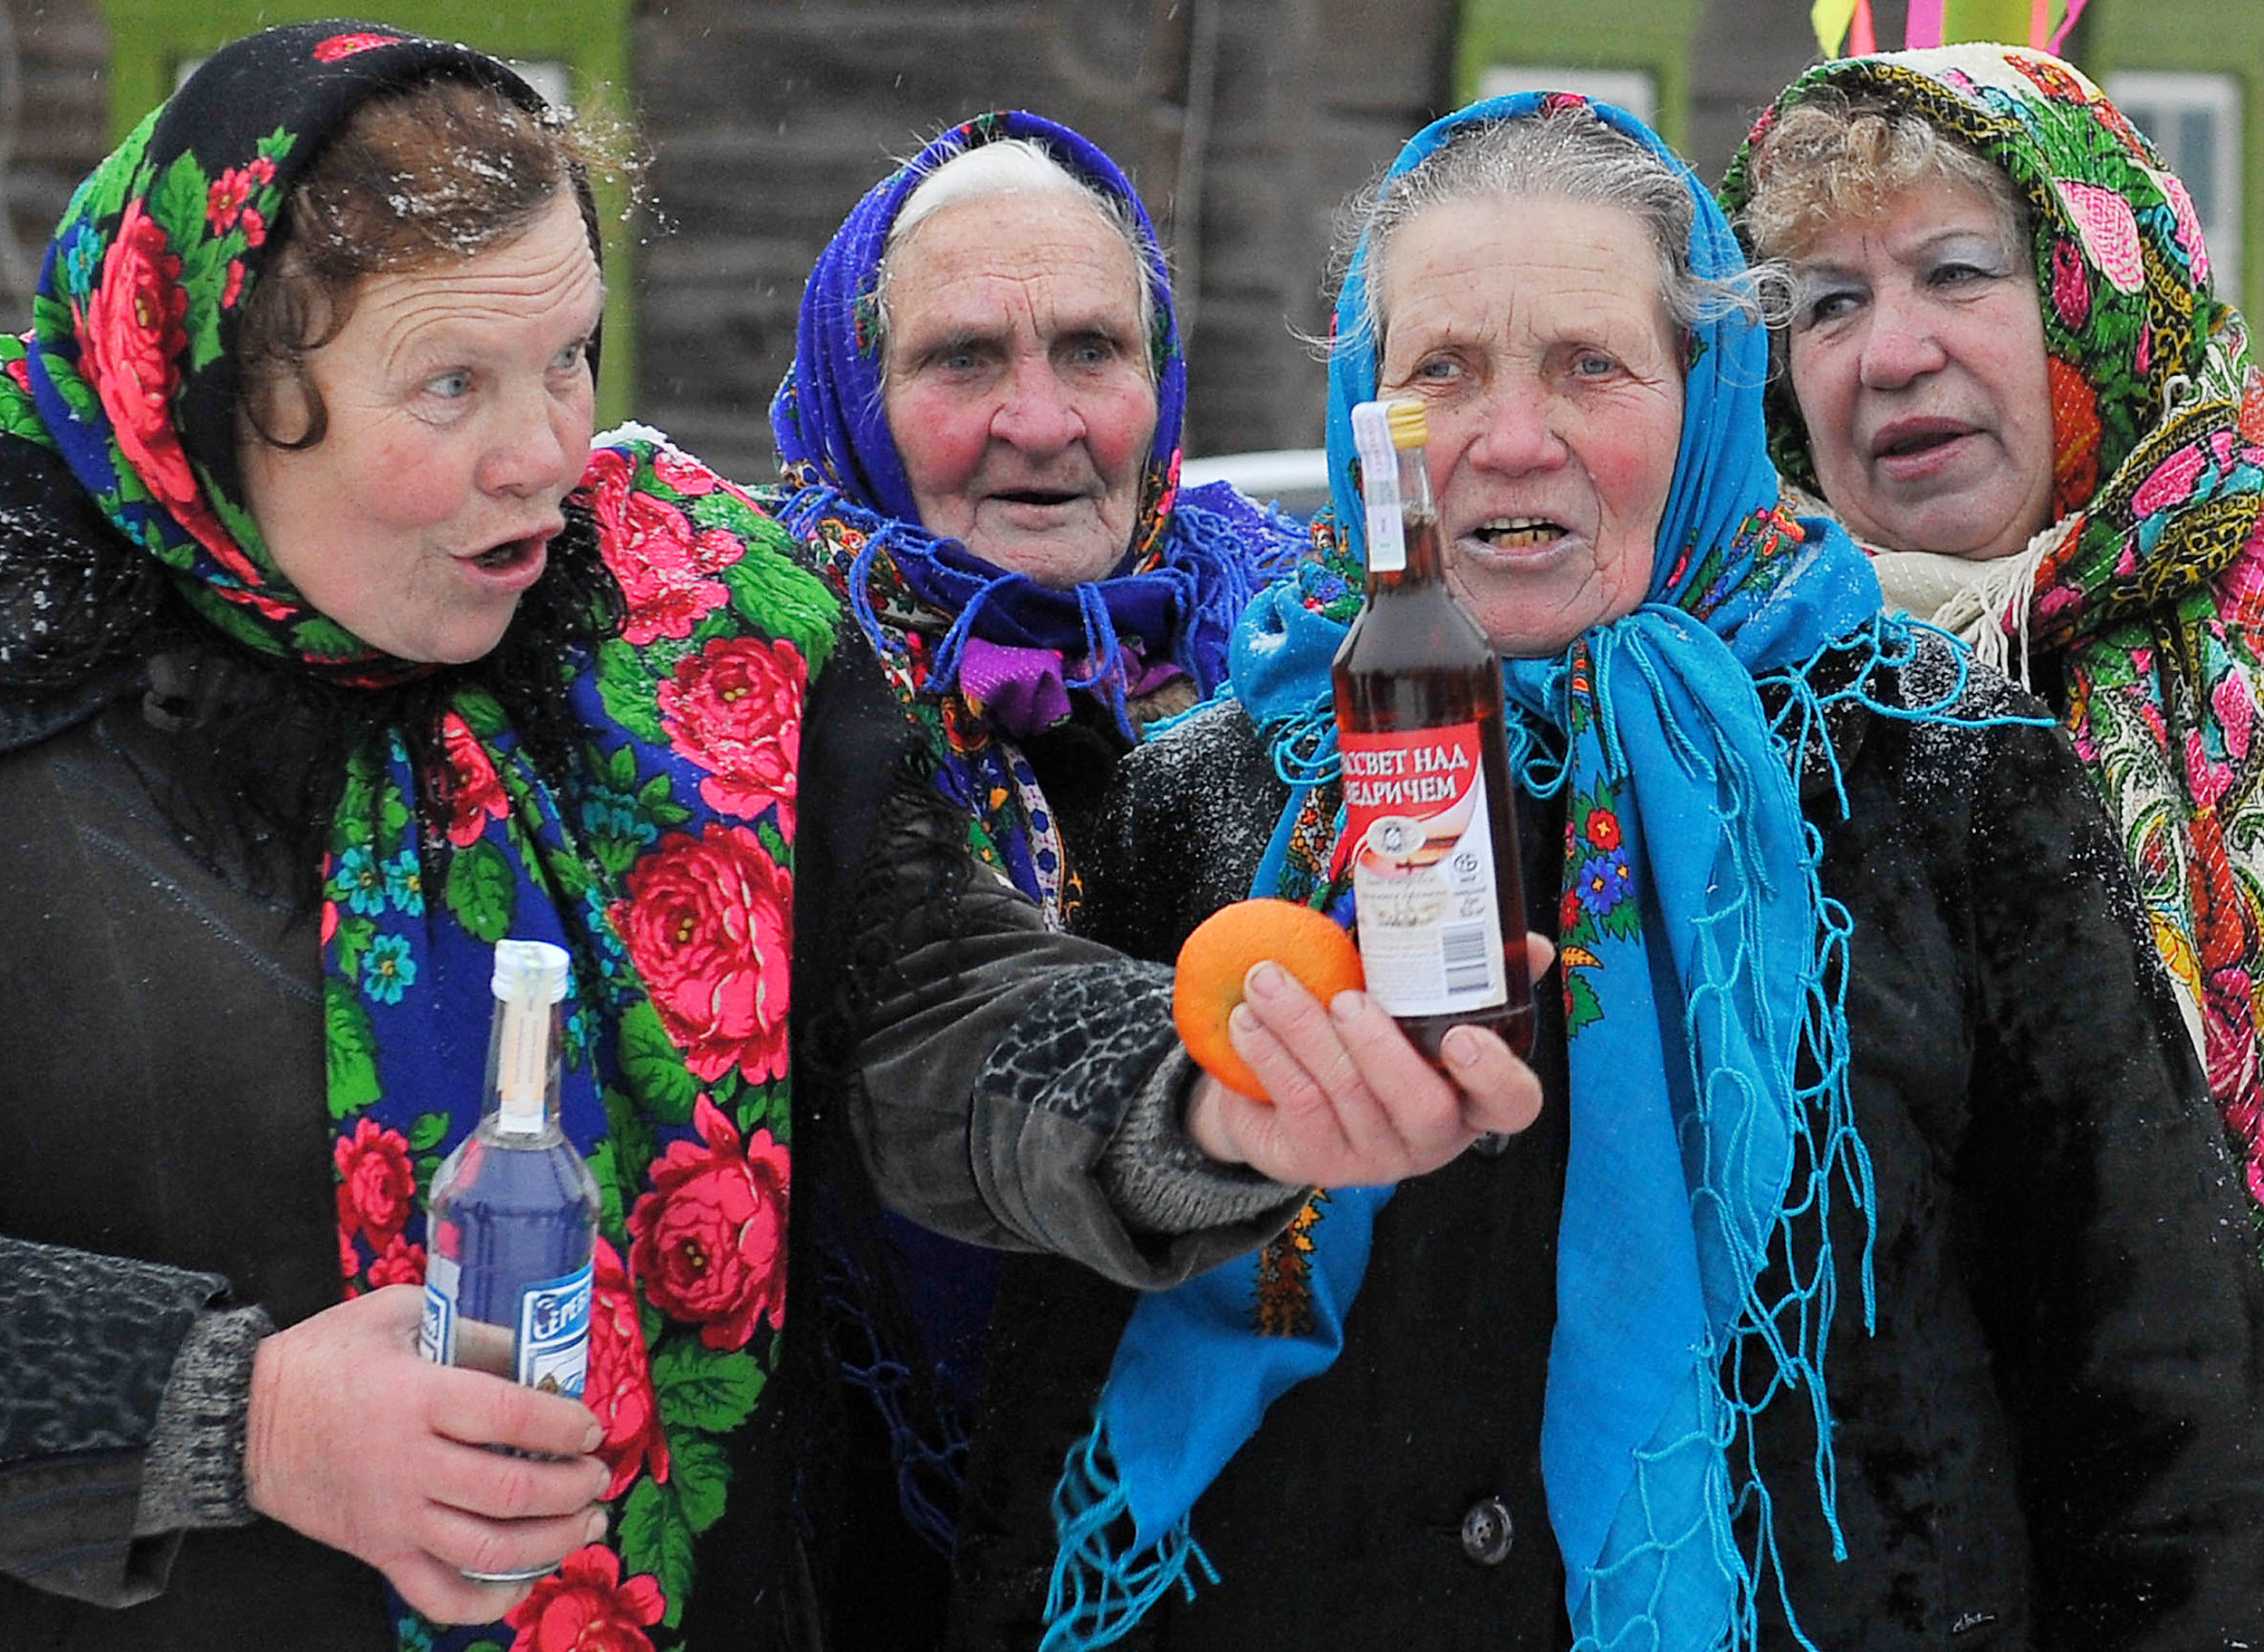 People drink vodka as they celebrate the Christmas carol rite (Koliady) in the village of Pogost. (Photo credit should read VIKTOR DRACHEV/AFP via Getty Images)